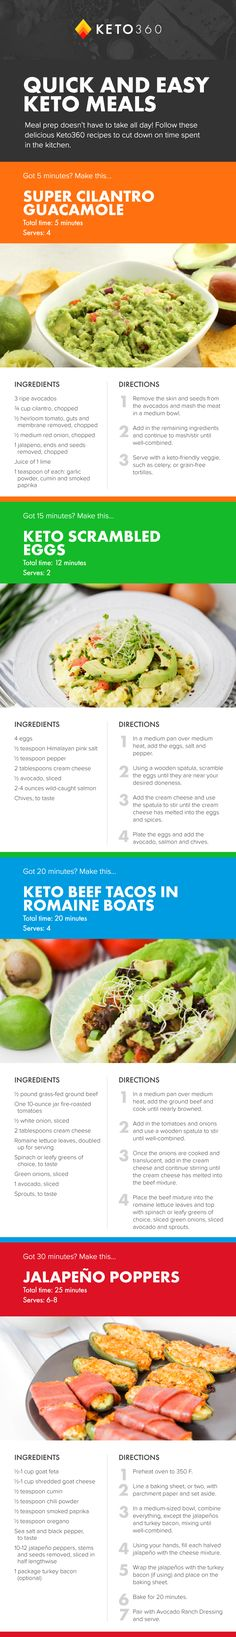 The ketogenic diet can be confusing. Learn all about how to manage this diet safely and effectively! #keto #ketogenic #keto360